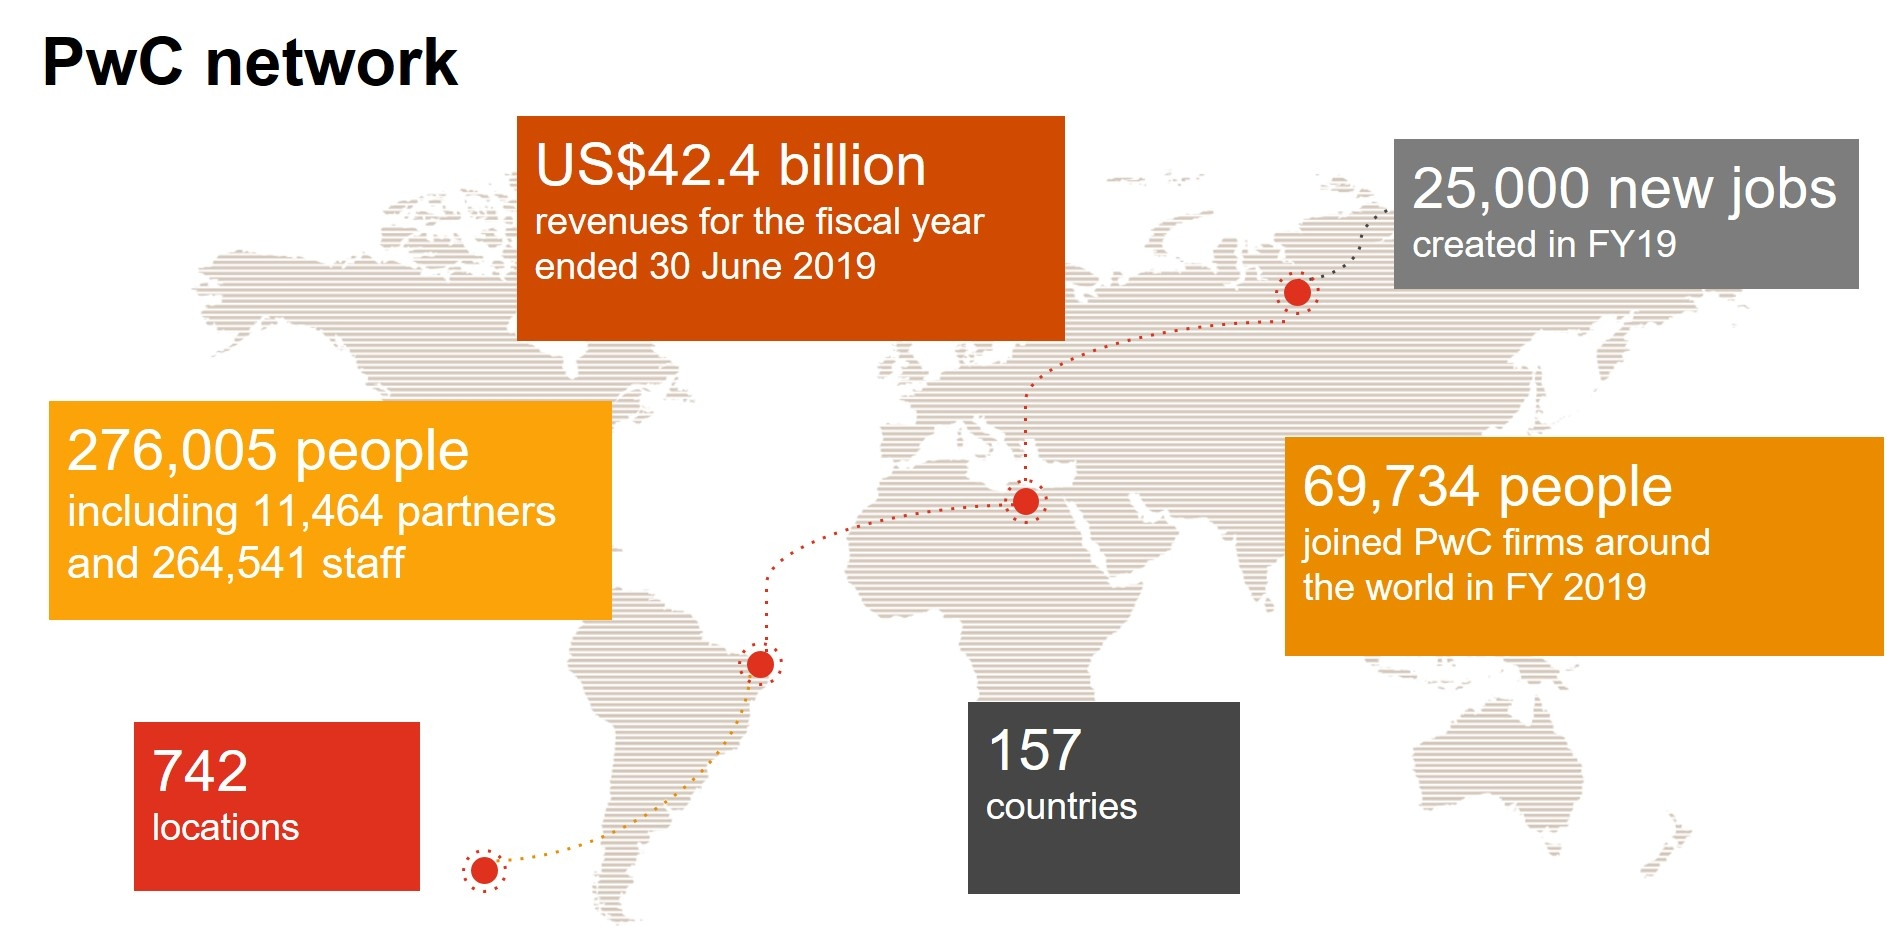 PwC global revenues up 7 per cent to $42.4 billion